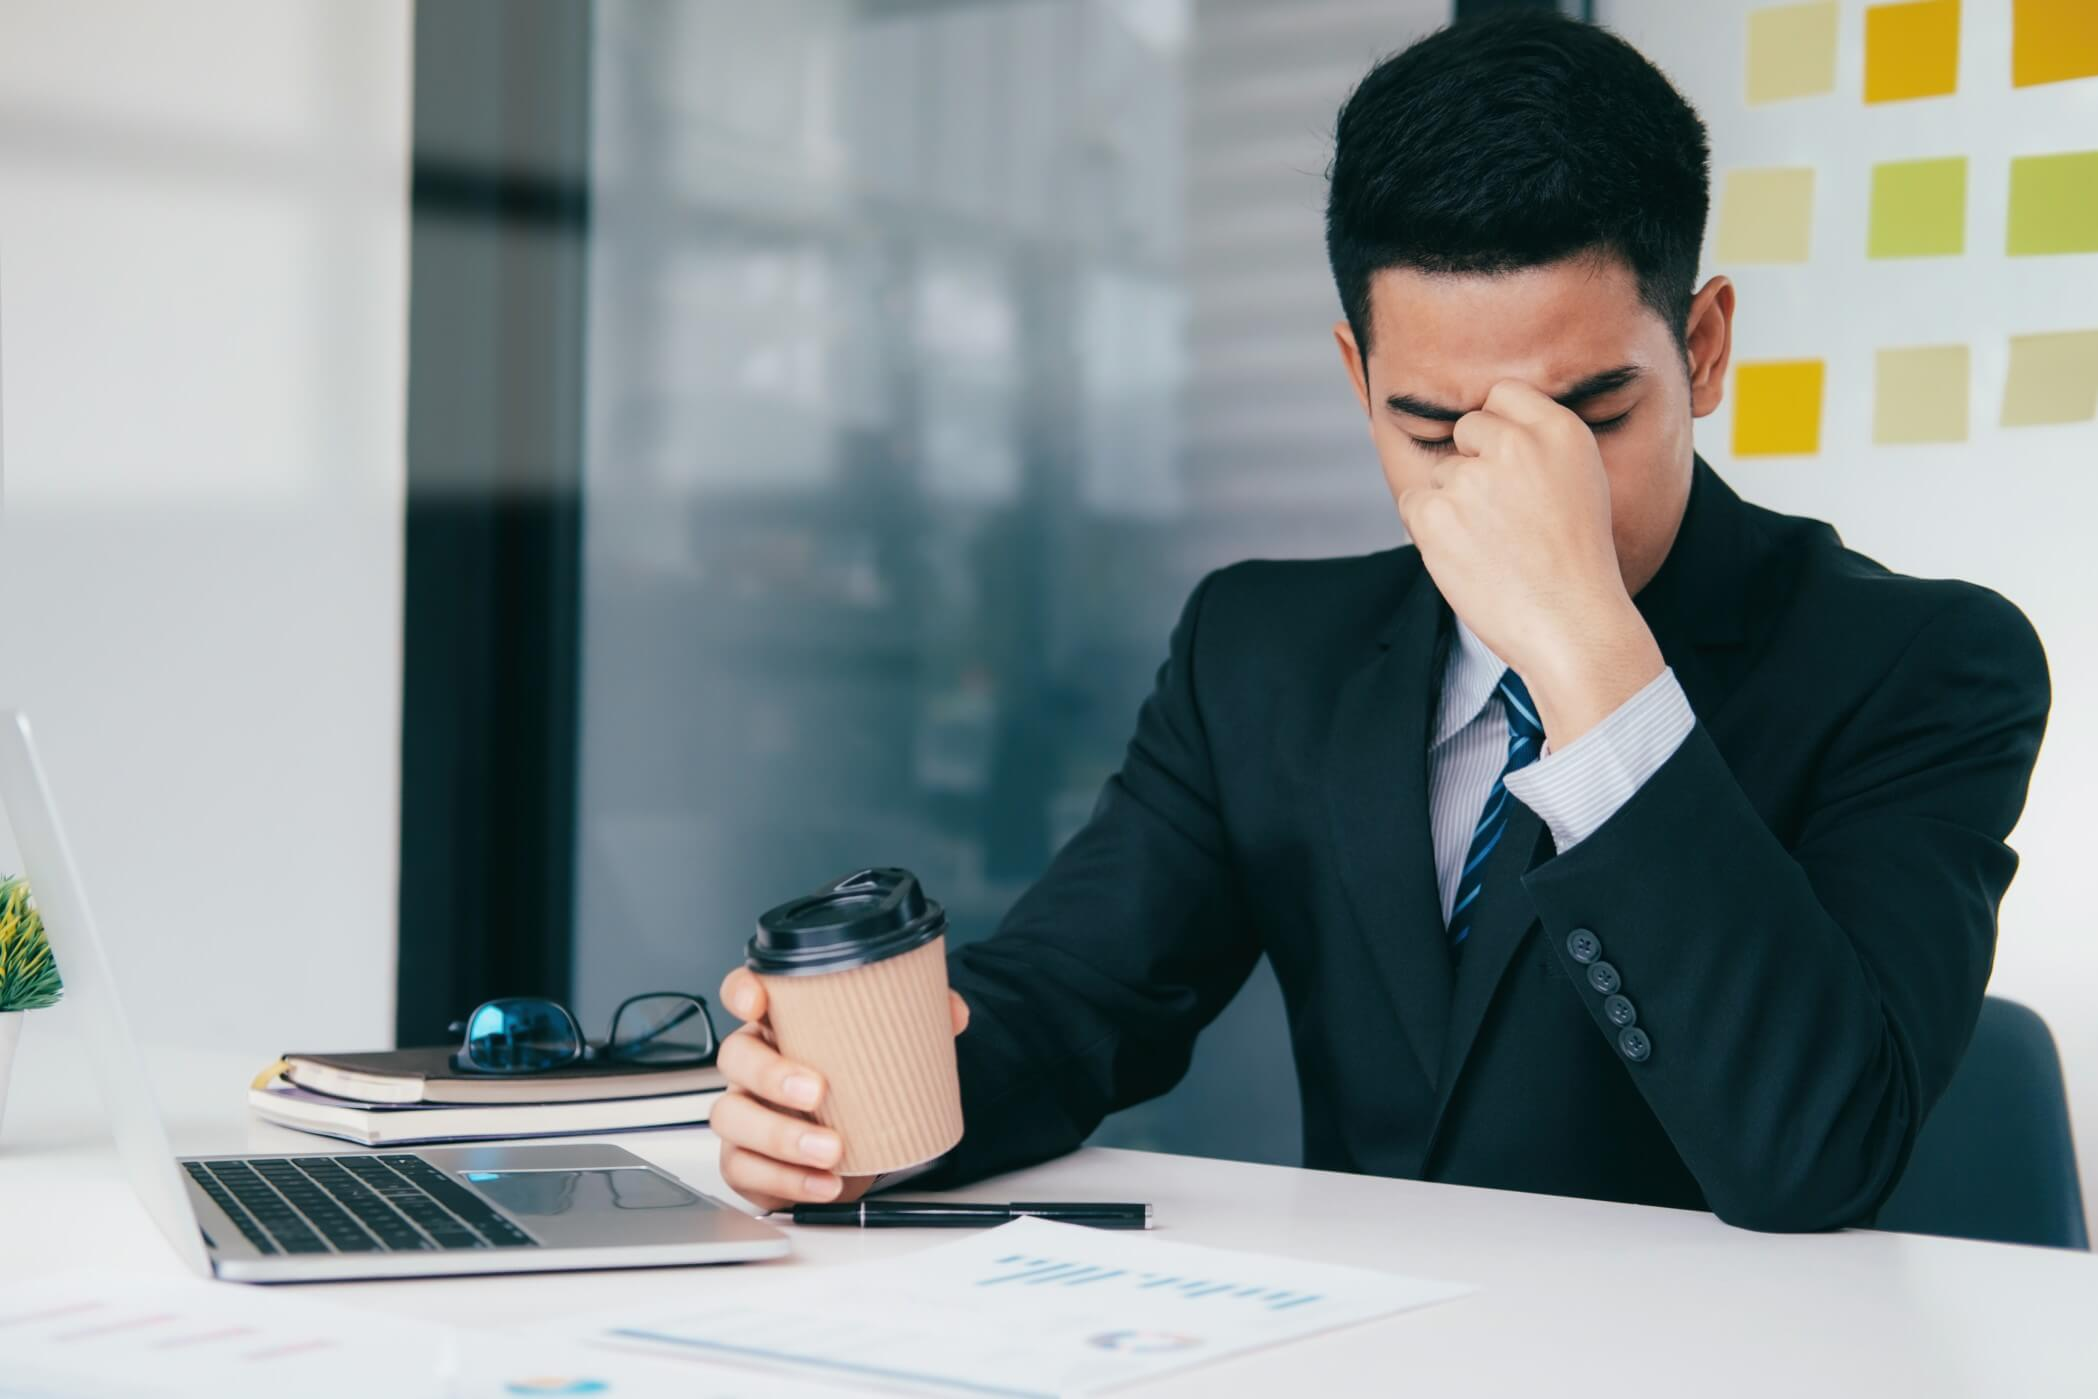 dignity at work stressed man in suit